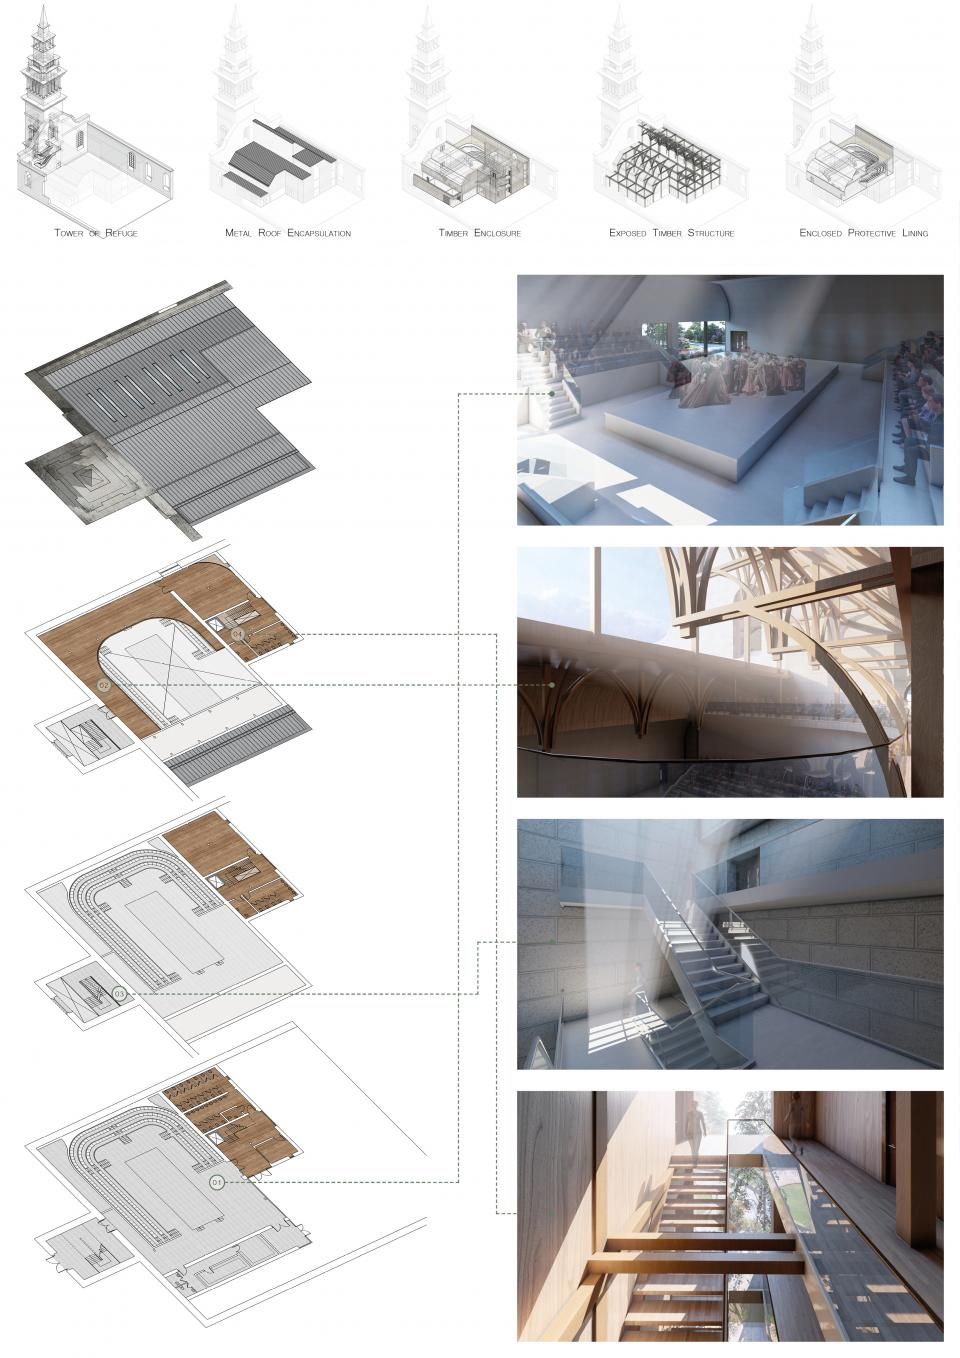 Ana Taylor_Architecture - MArch_2020_Tectonics of Sanctuary_9.jpg